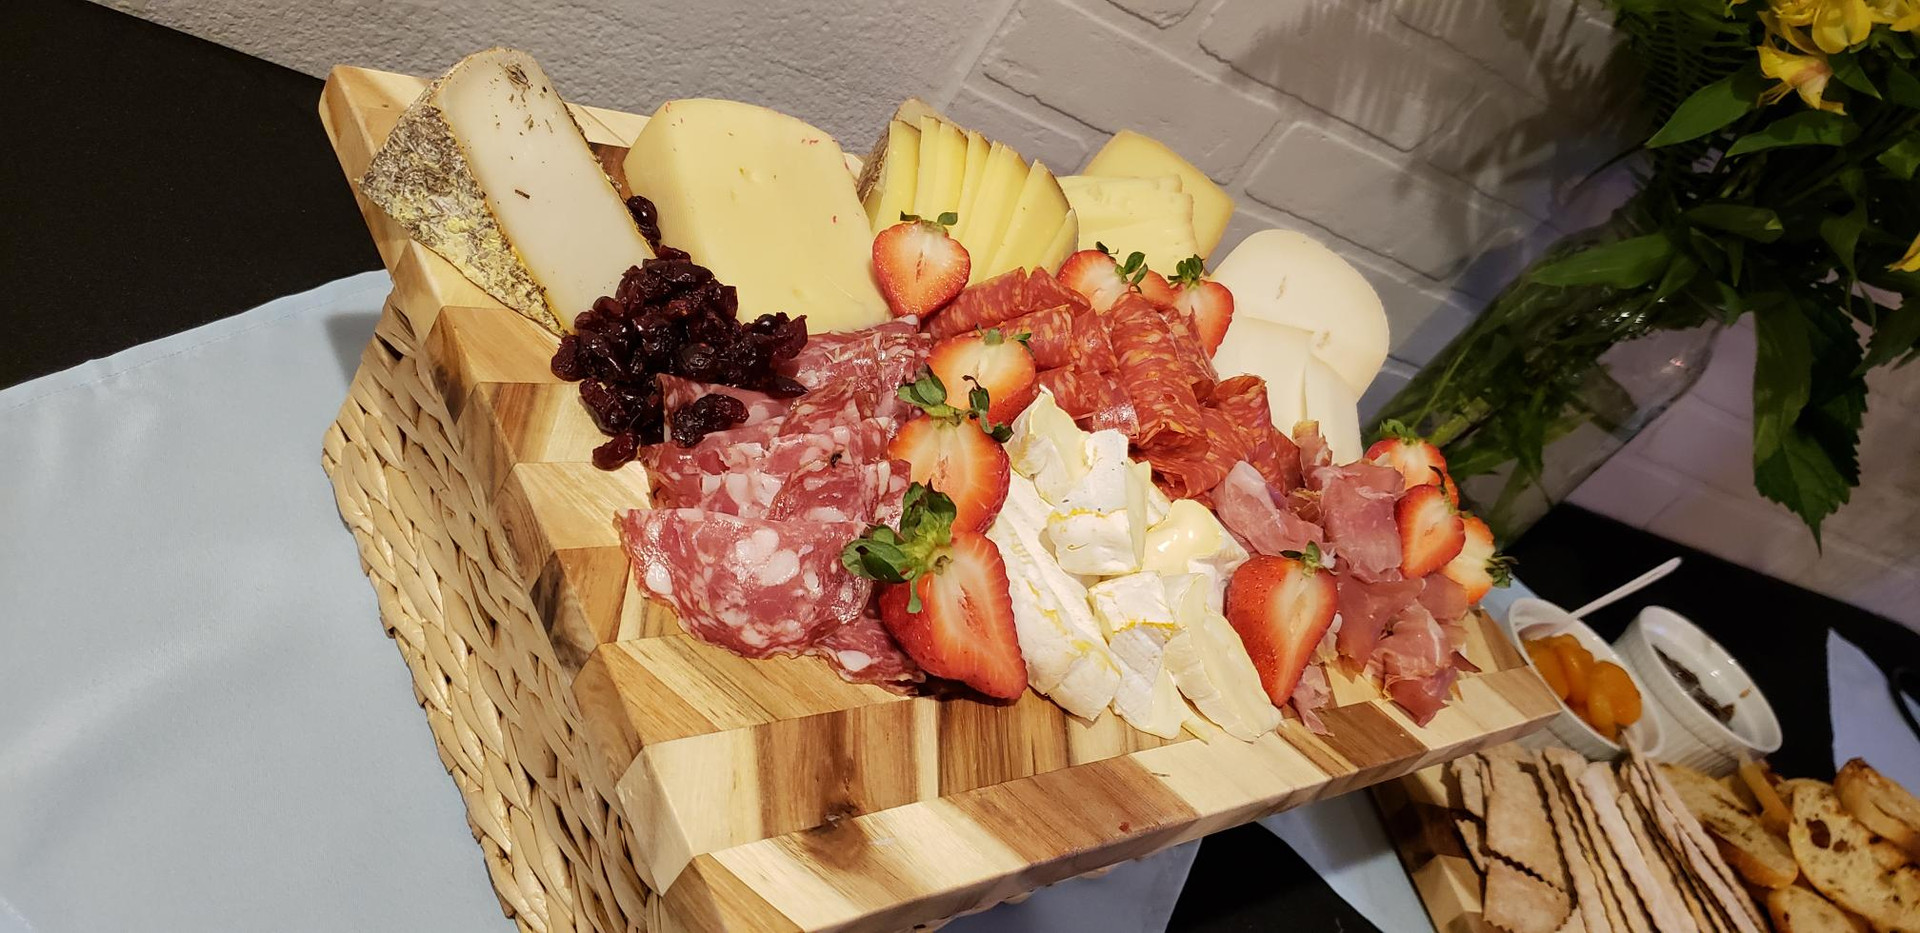 Fabulous Cheese and Fruit Board